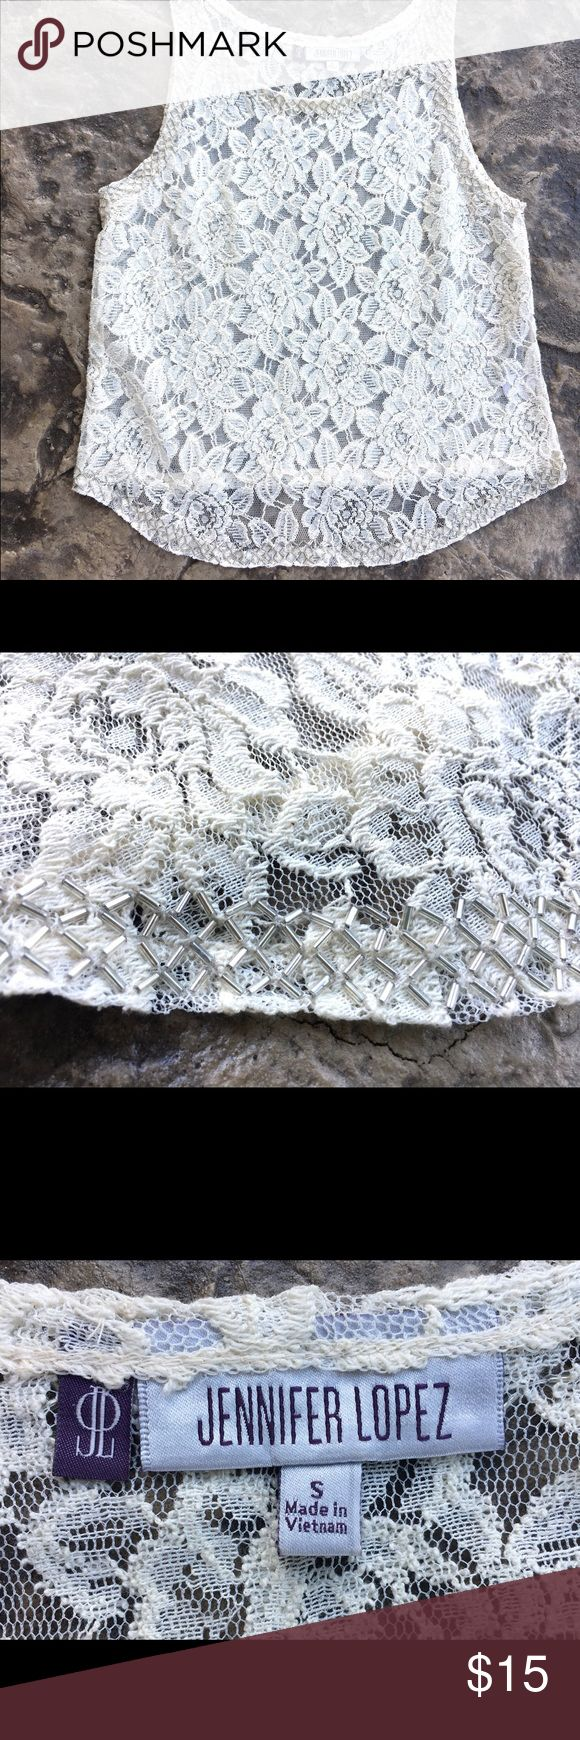 Jennifer Lopez cream lace top with beading So pretty! Lace top with bead detailing. Jennifer Lopez Tops Tank Tops